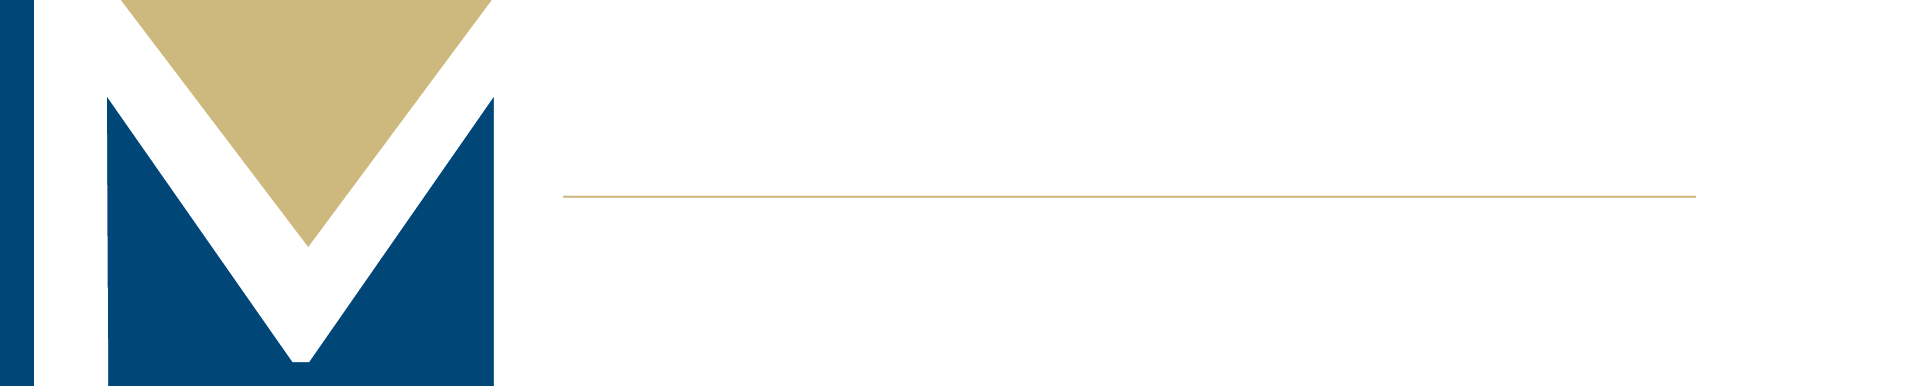 McInnis Builders LLC - Panama City Beach FL General Contracting and Construction Management Firm